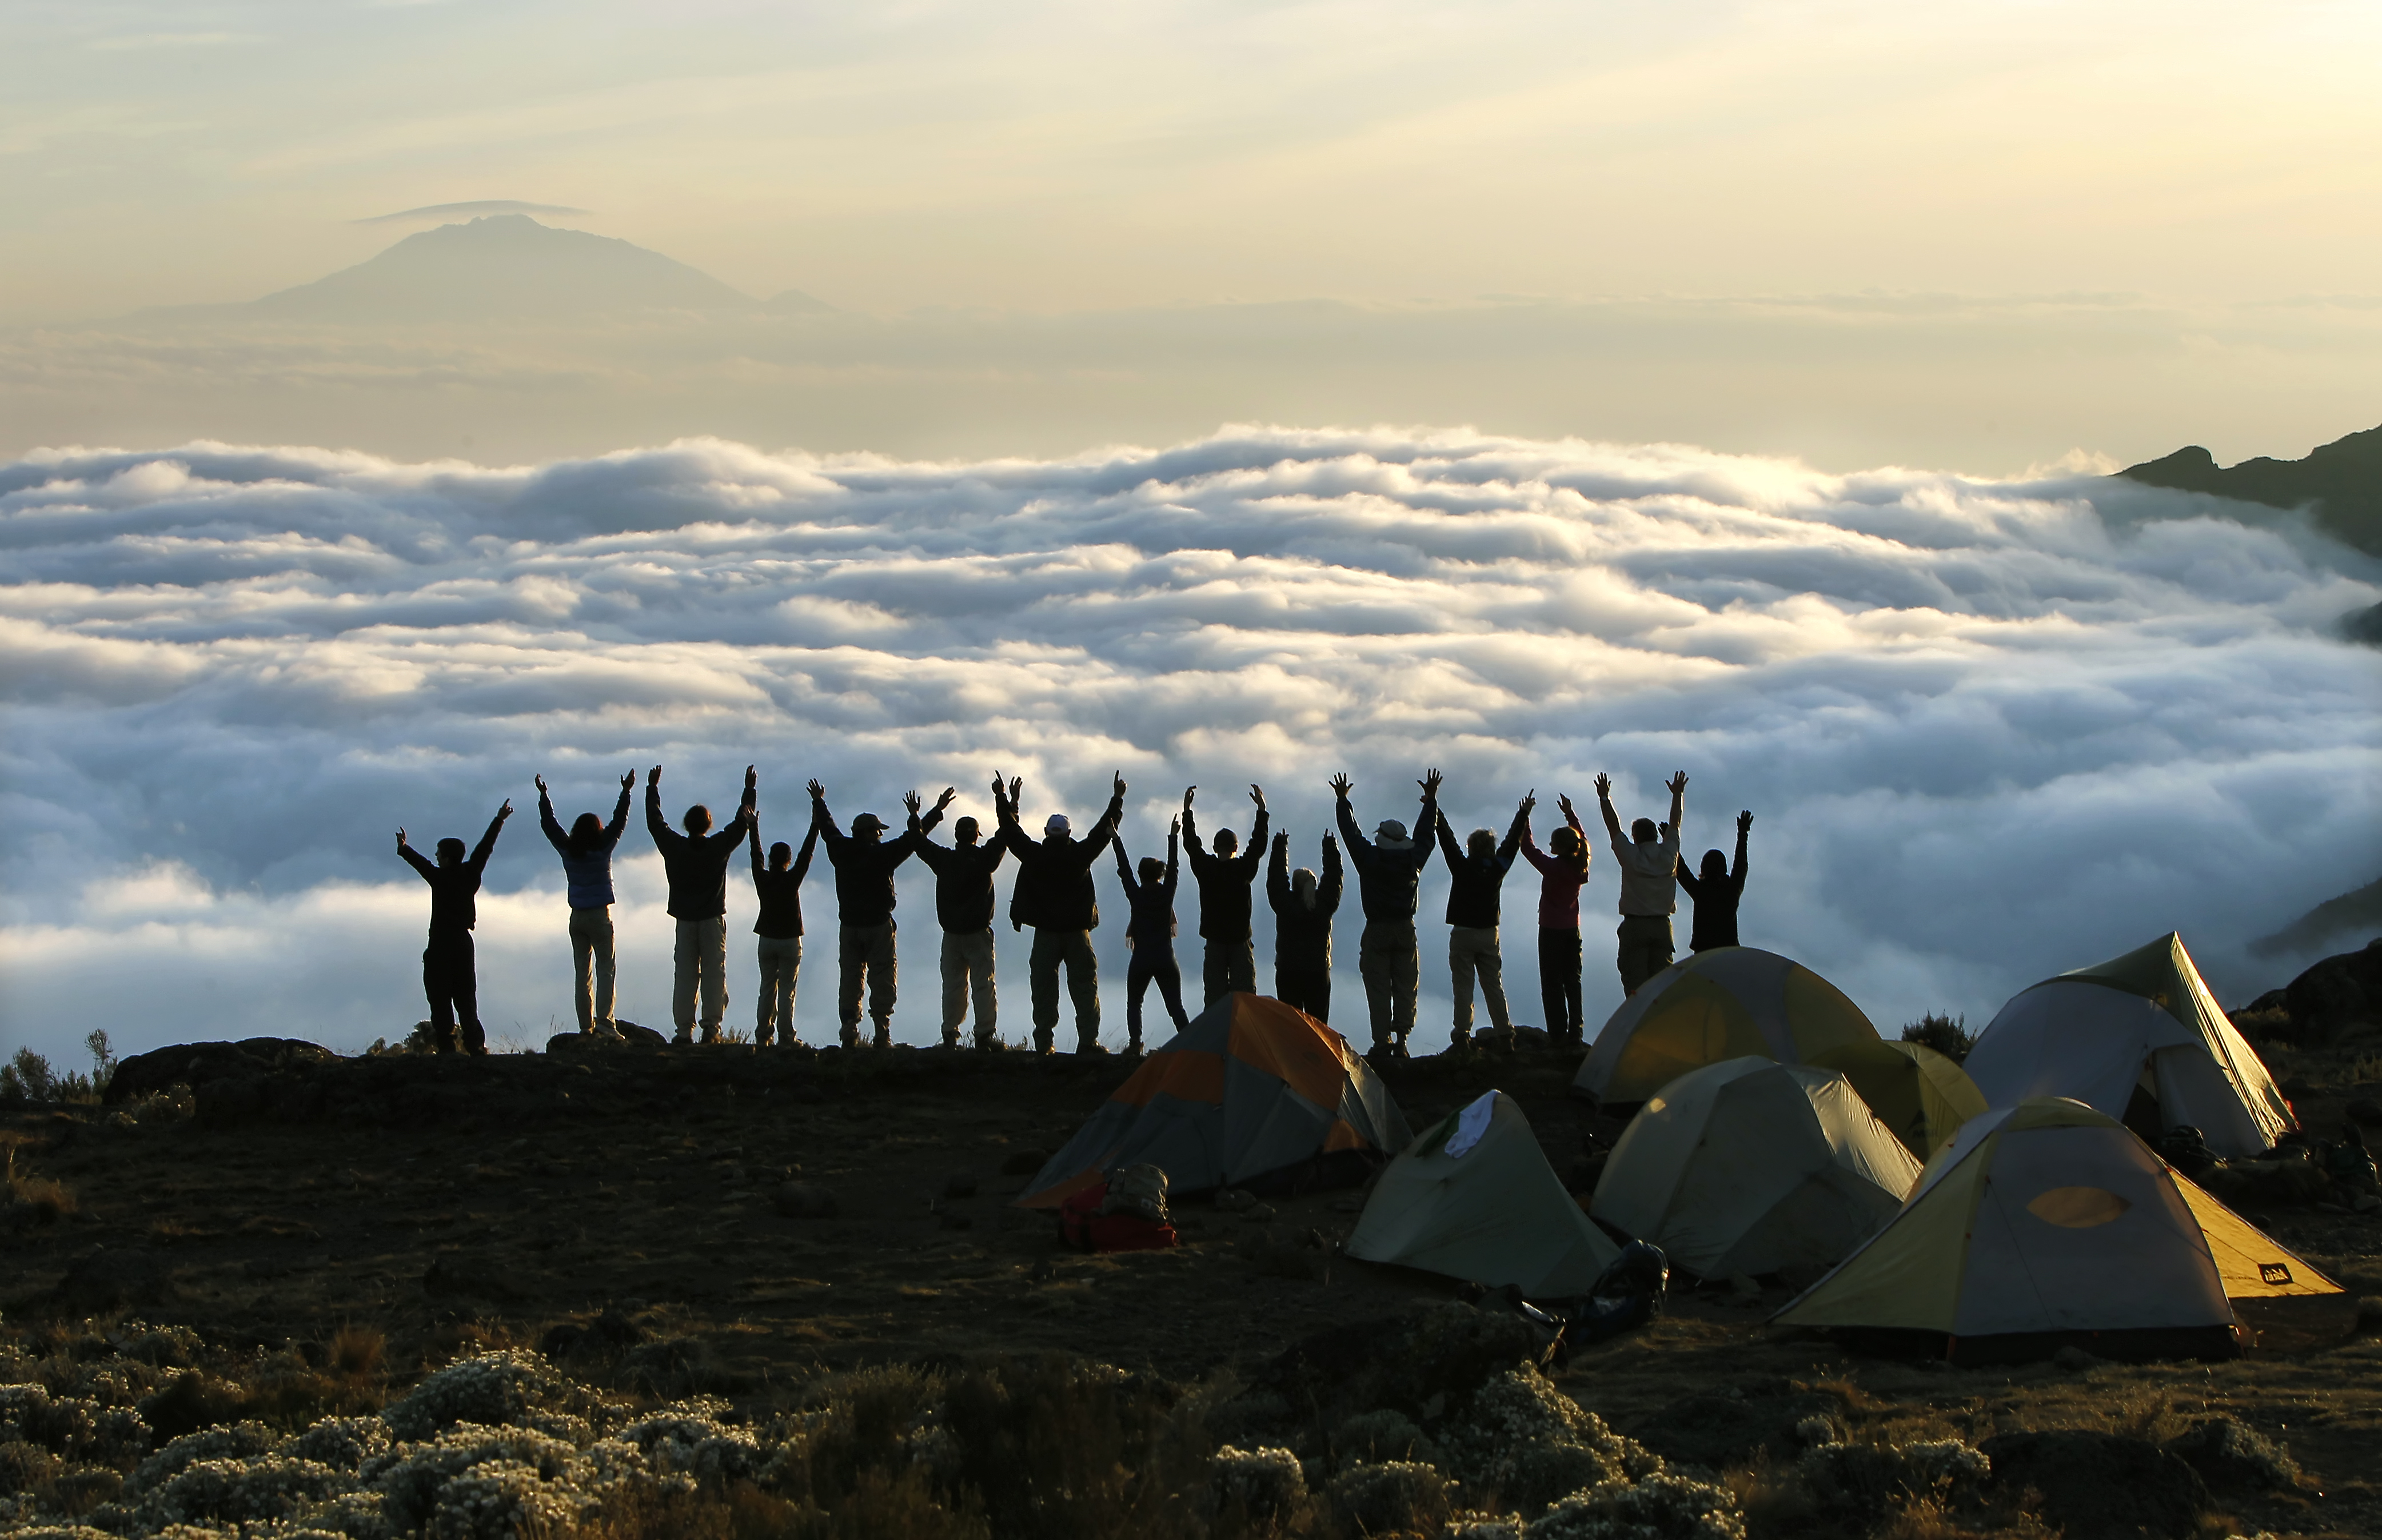 ShelterBox - Do Your Own Thing - Kilimanjaro